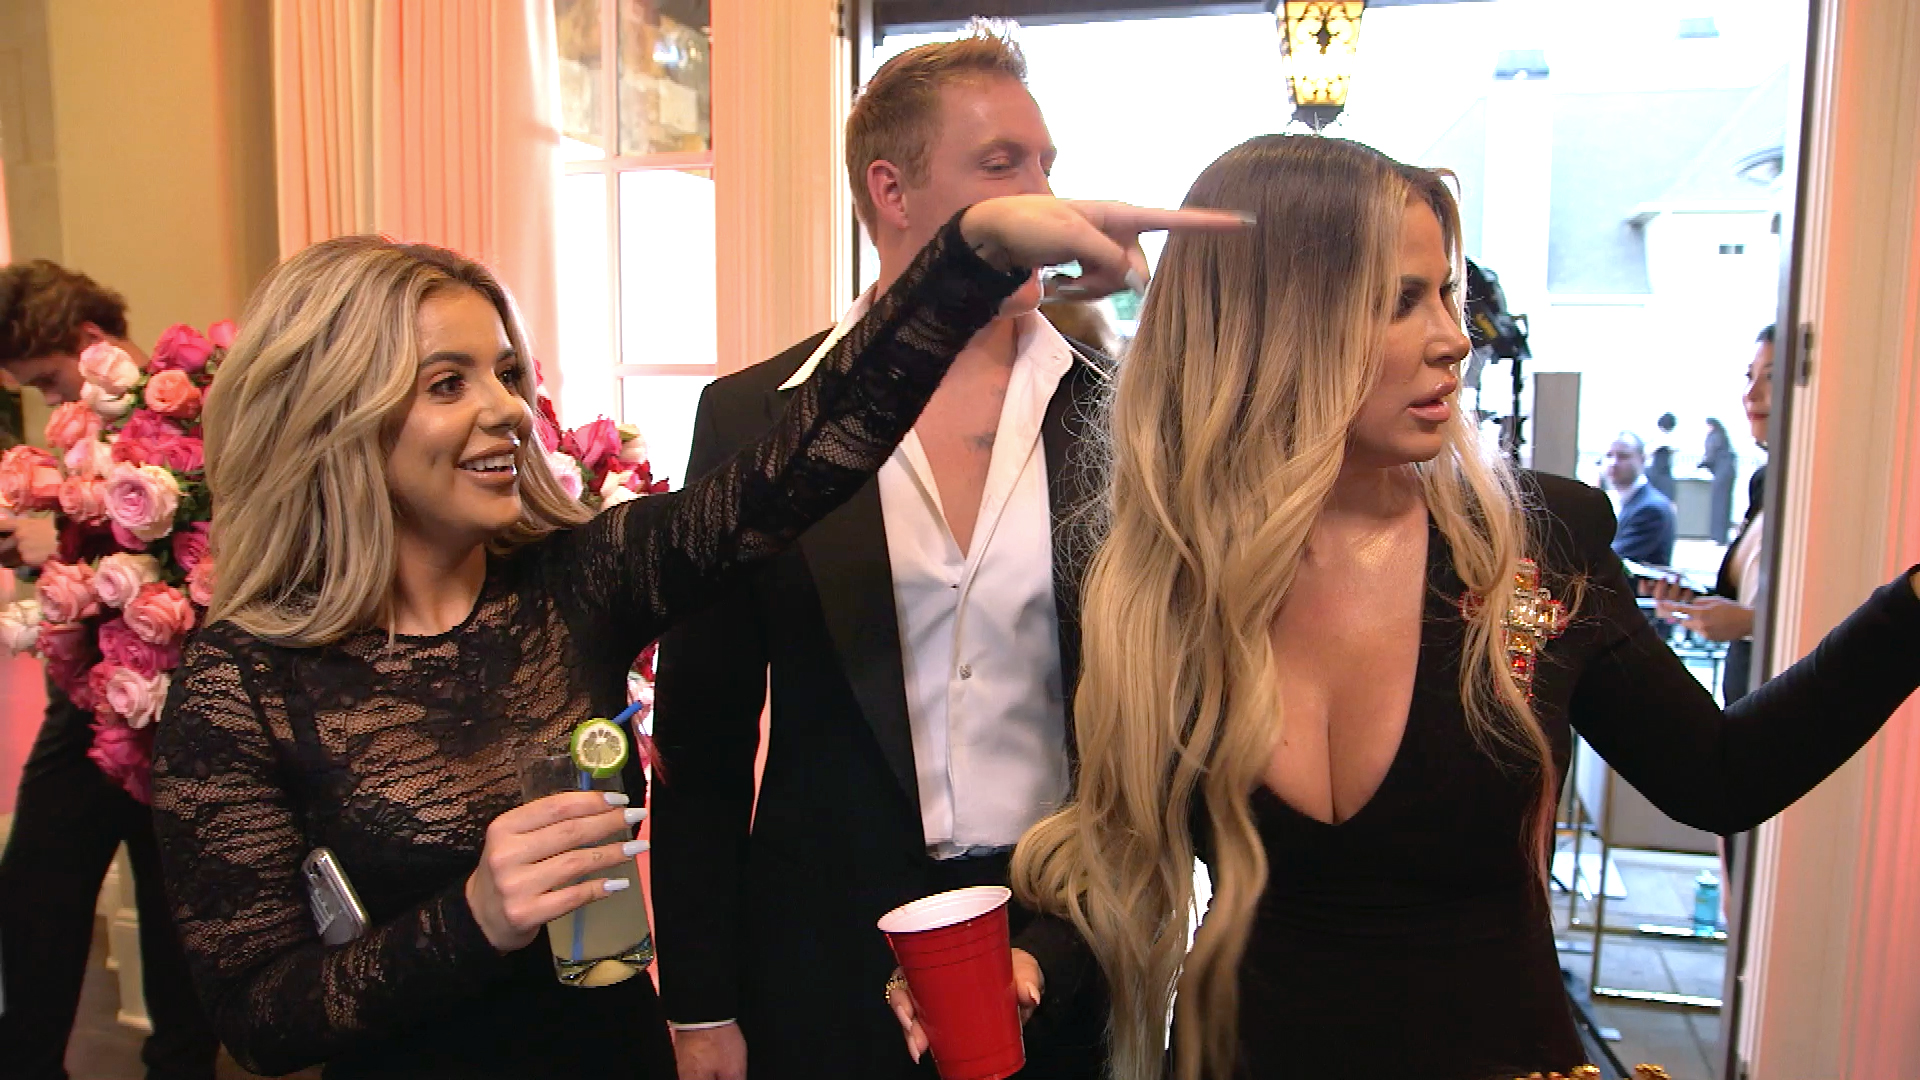 Get a Sneak Peek at Kim Zolciak-Biermann's 40th Birthday